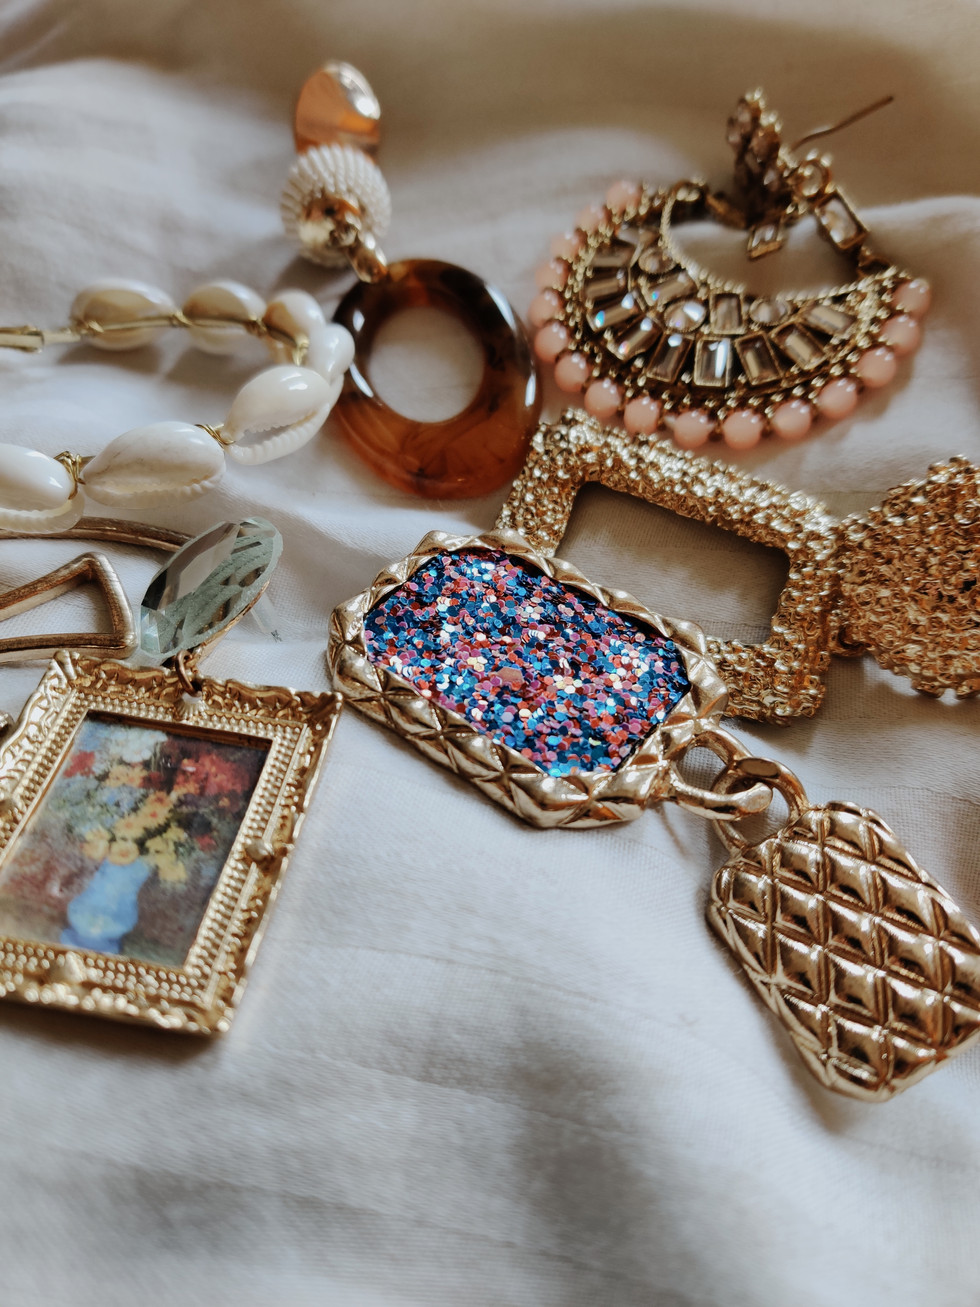 My Jewelry Box - Earrings Edition (Current Faves)